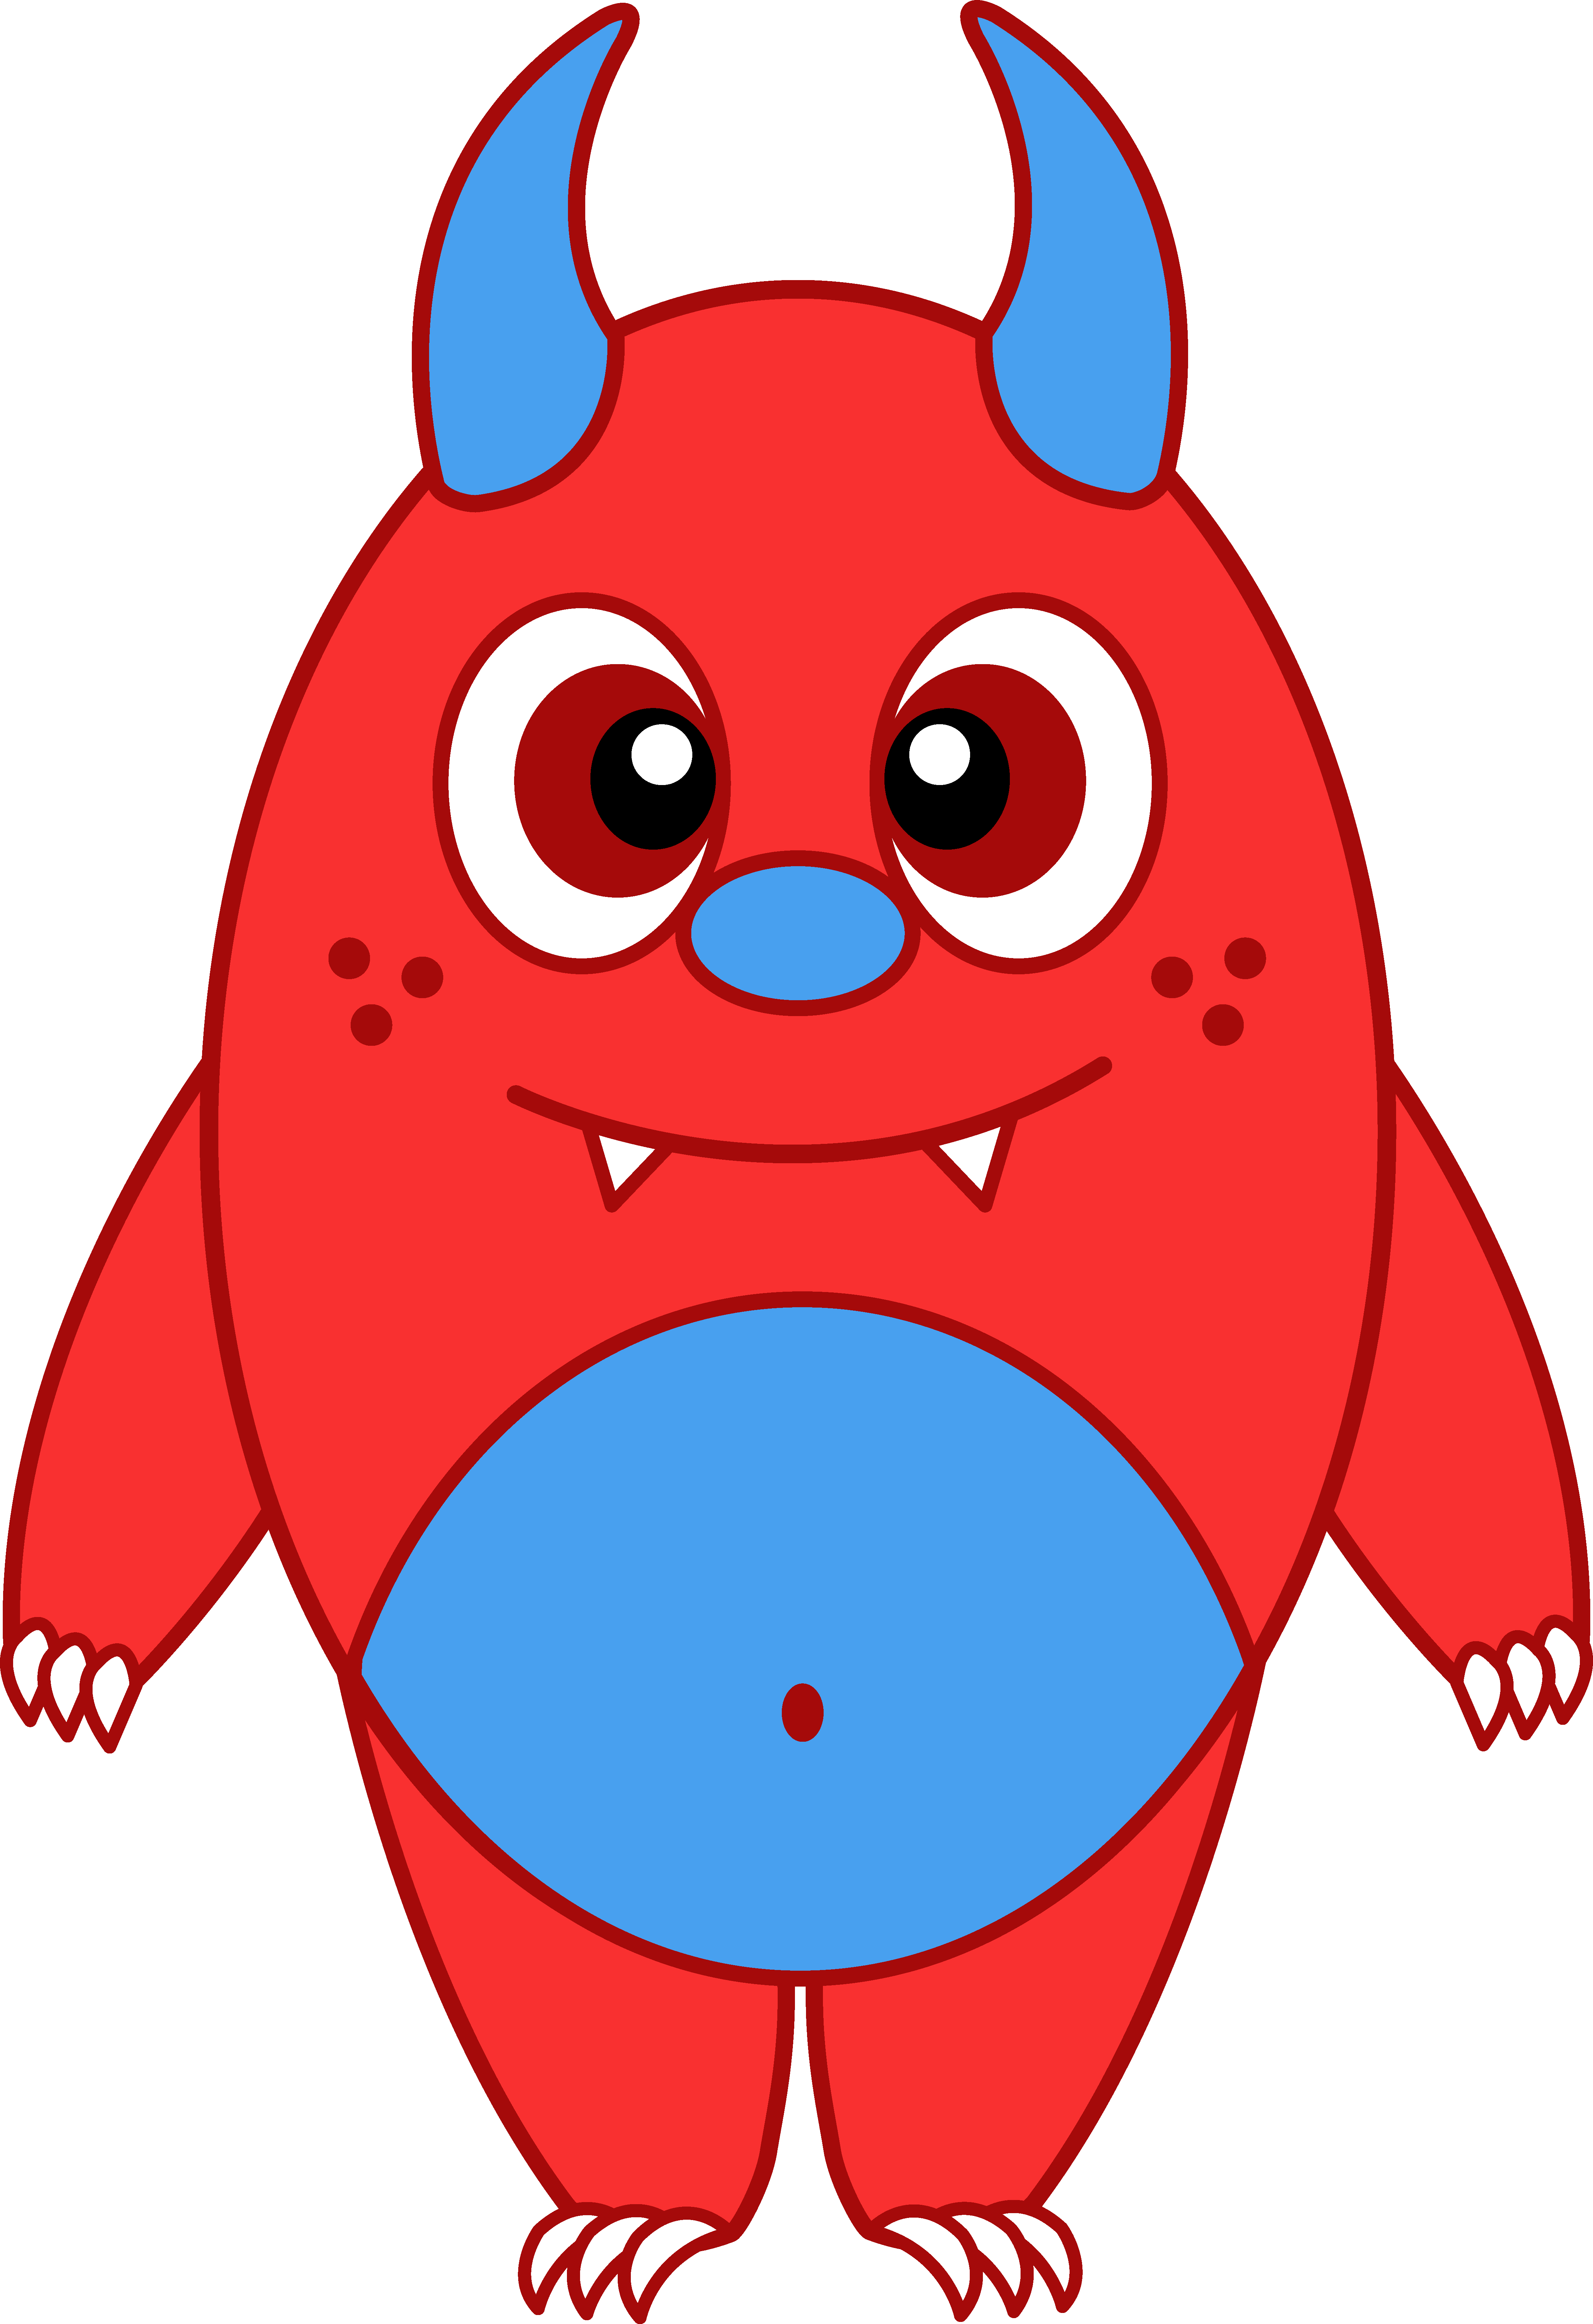 4611x6729 Silly Little Red Monster